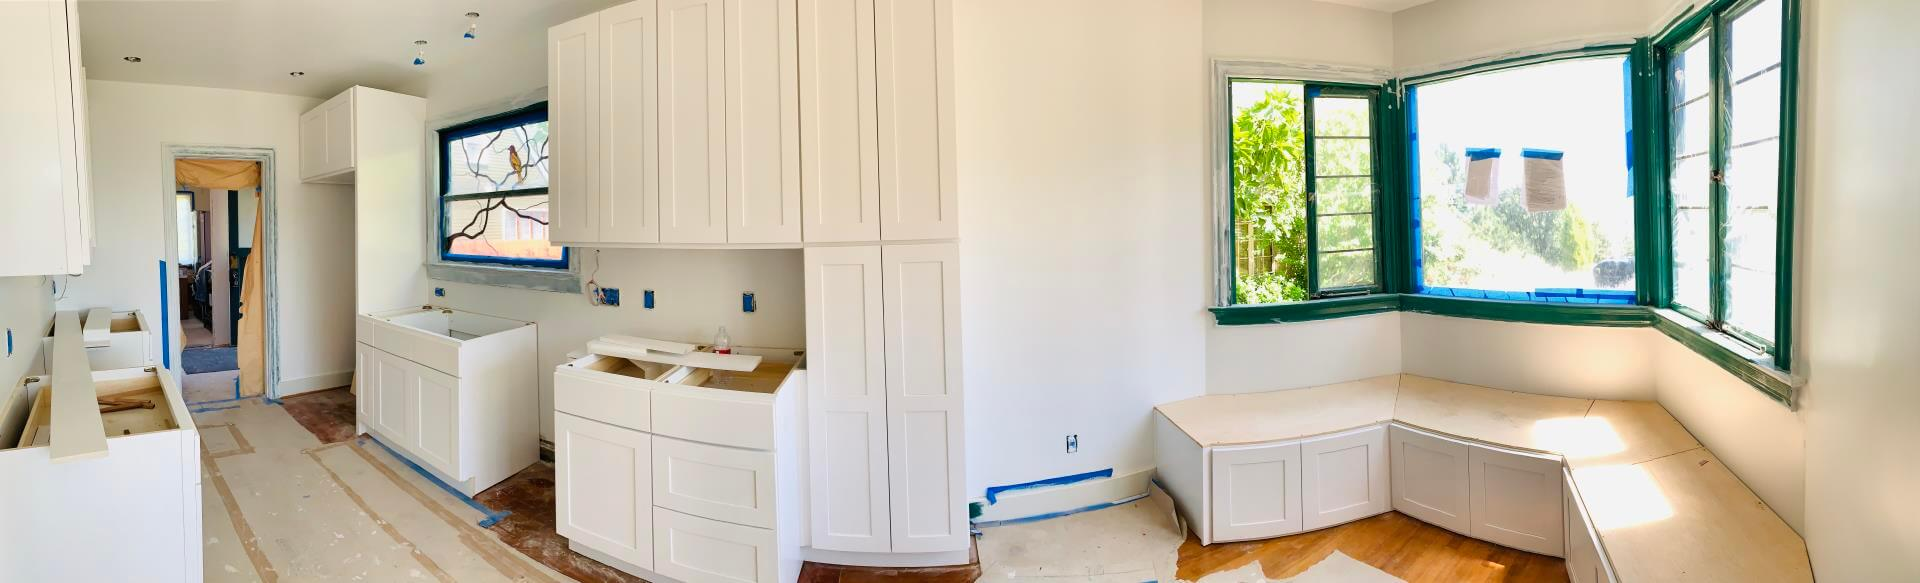 Cabinet installation in Bellevue